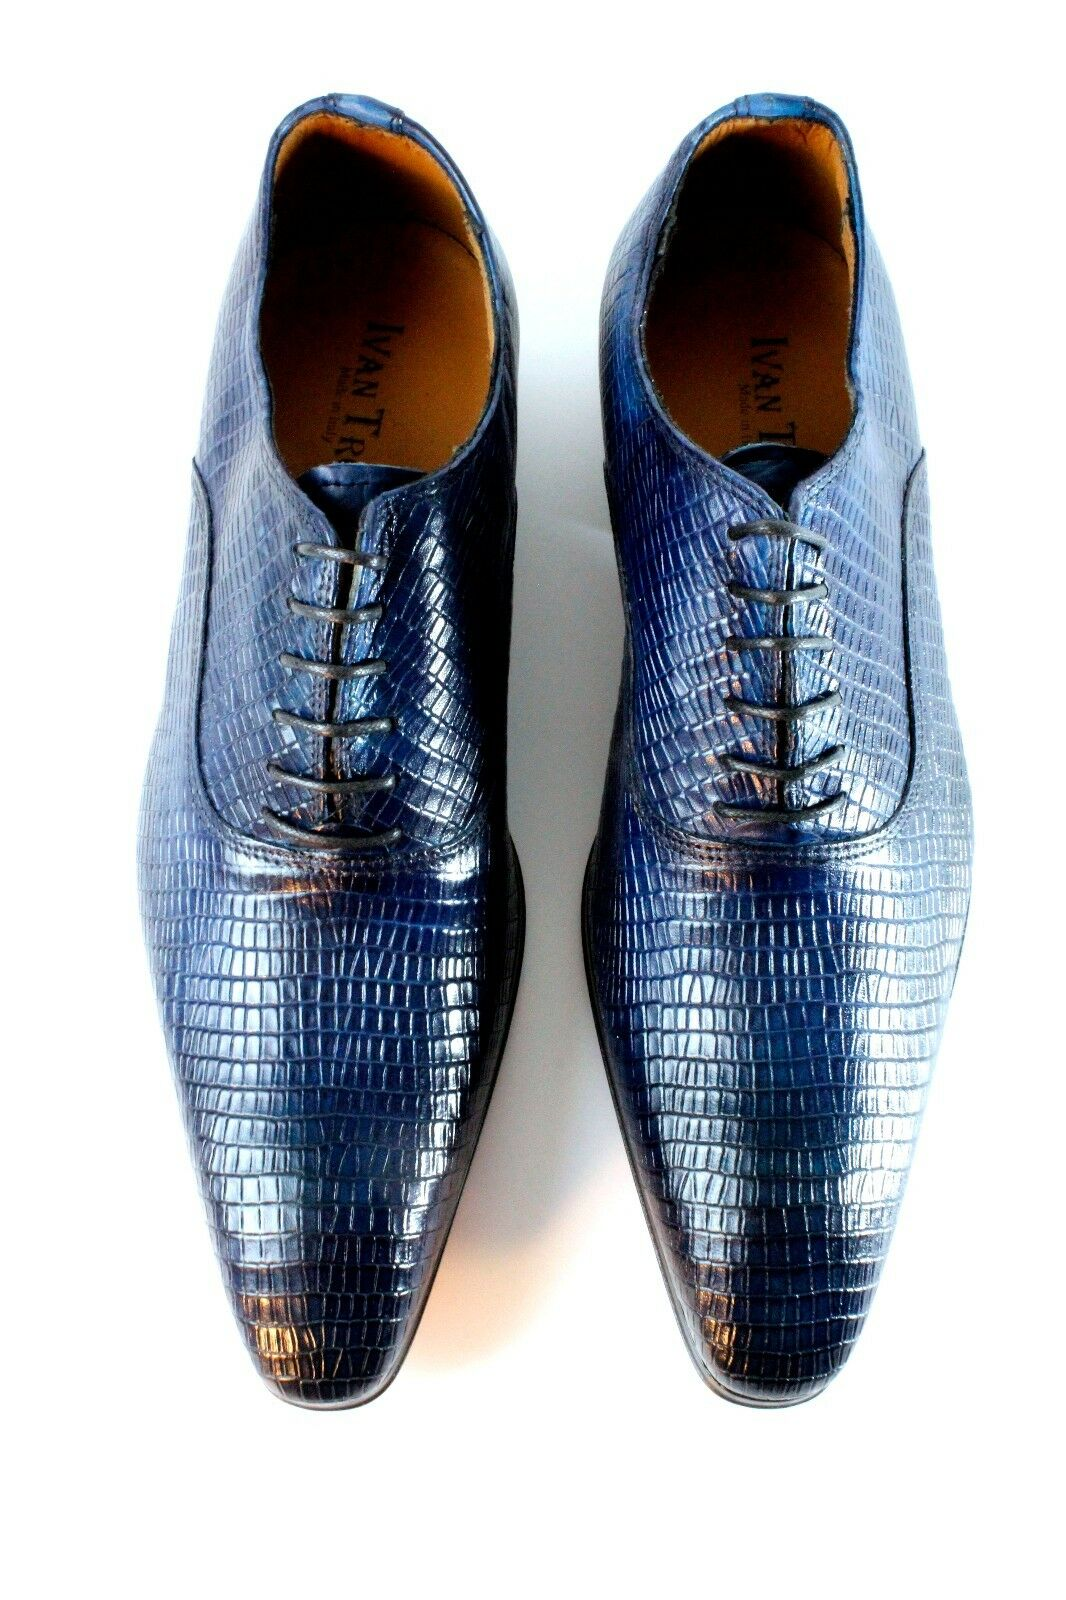 IVAN TROY Blue Blue TROY Small Rec Handmade Uomo Italian Leather Dress Shoes/Oxford Shoes fdc0ba